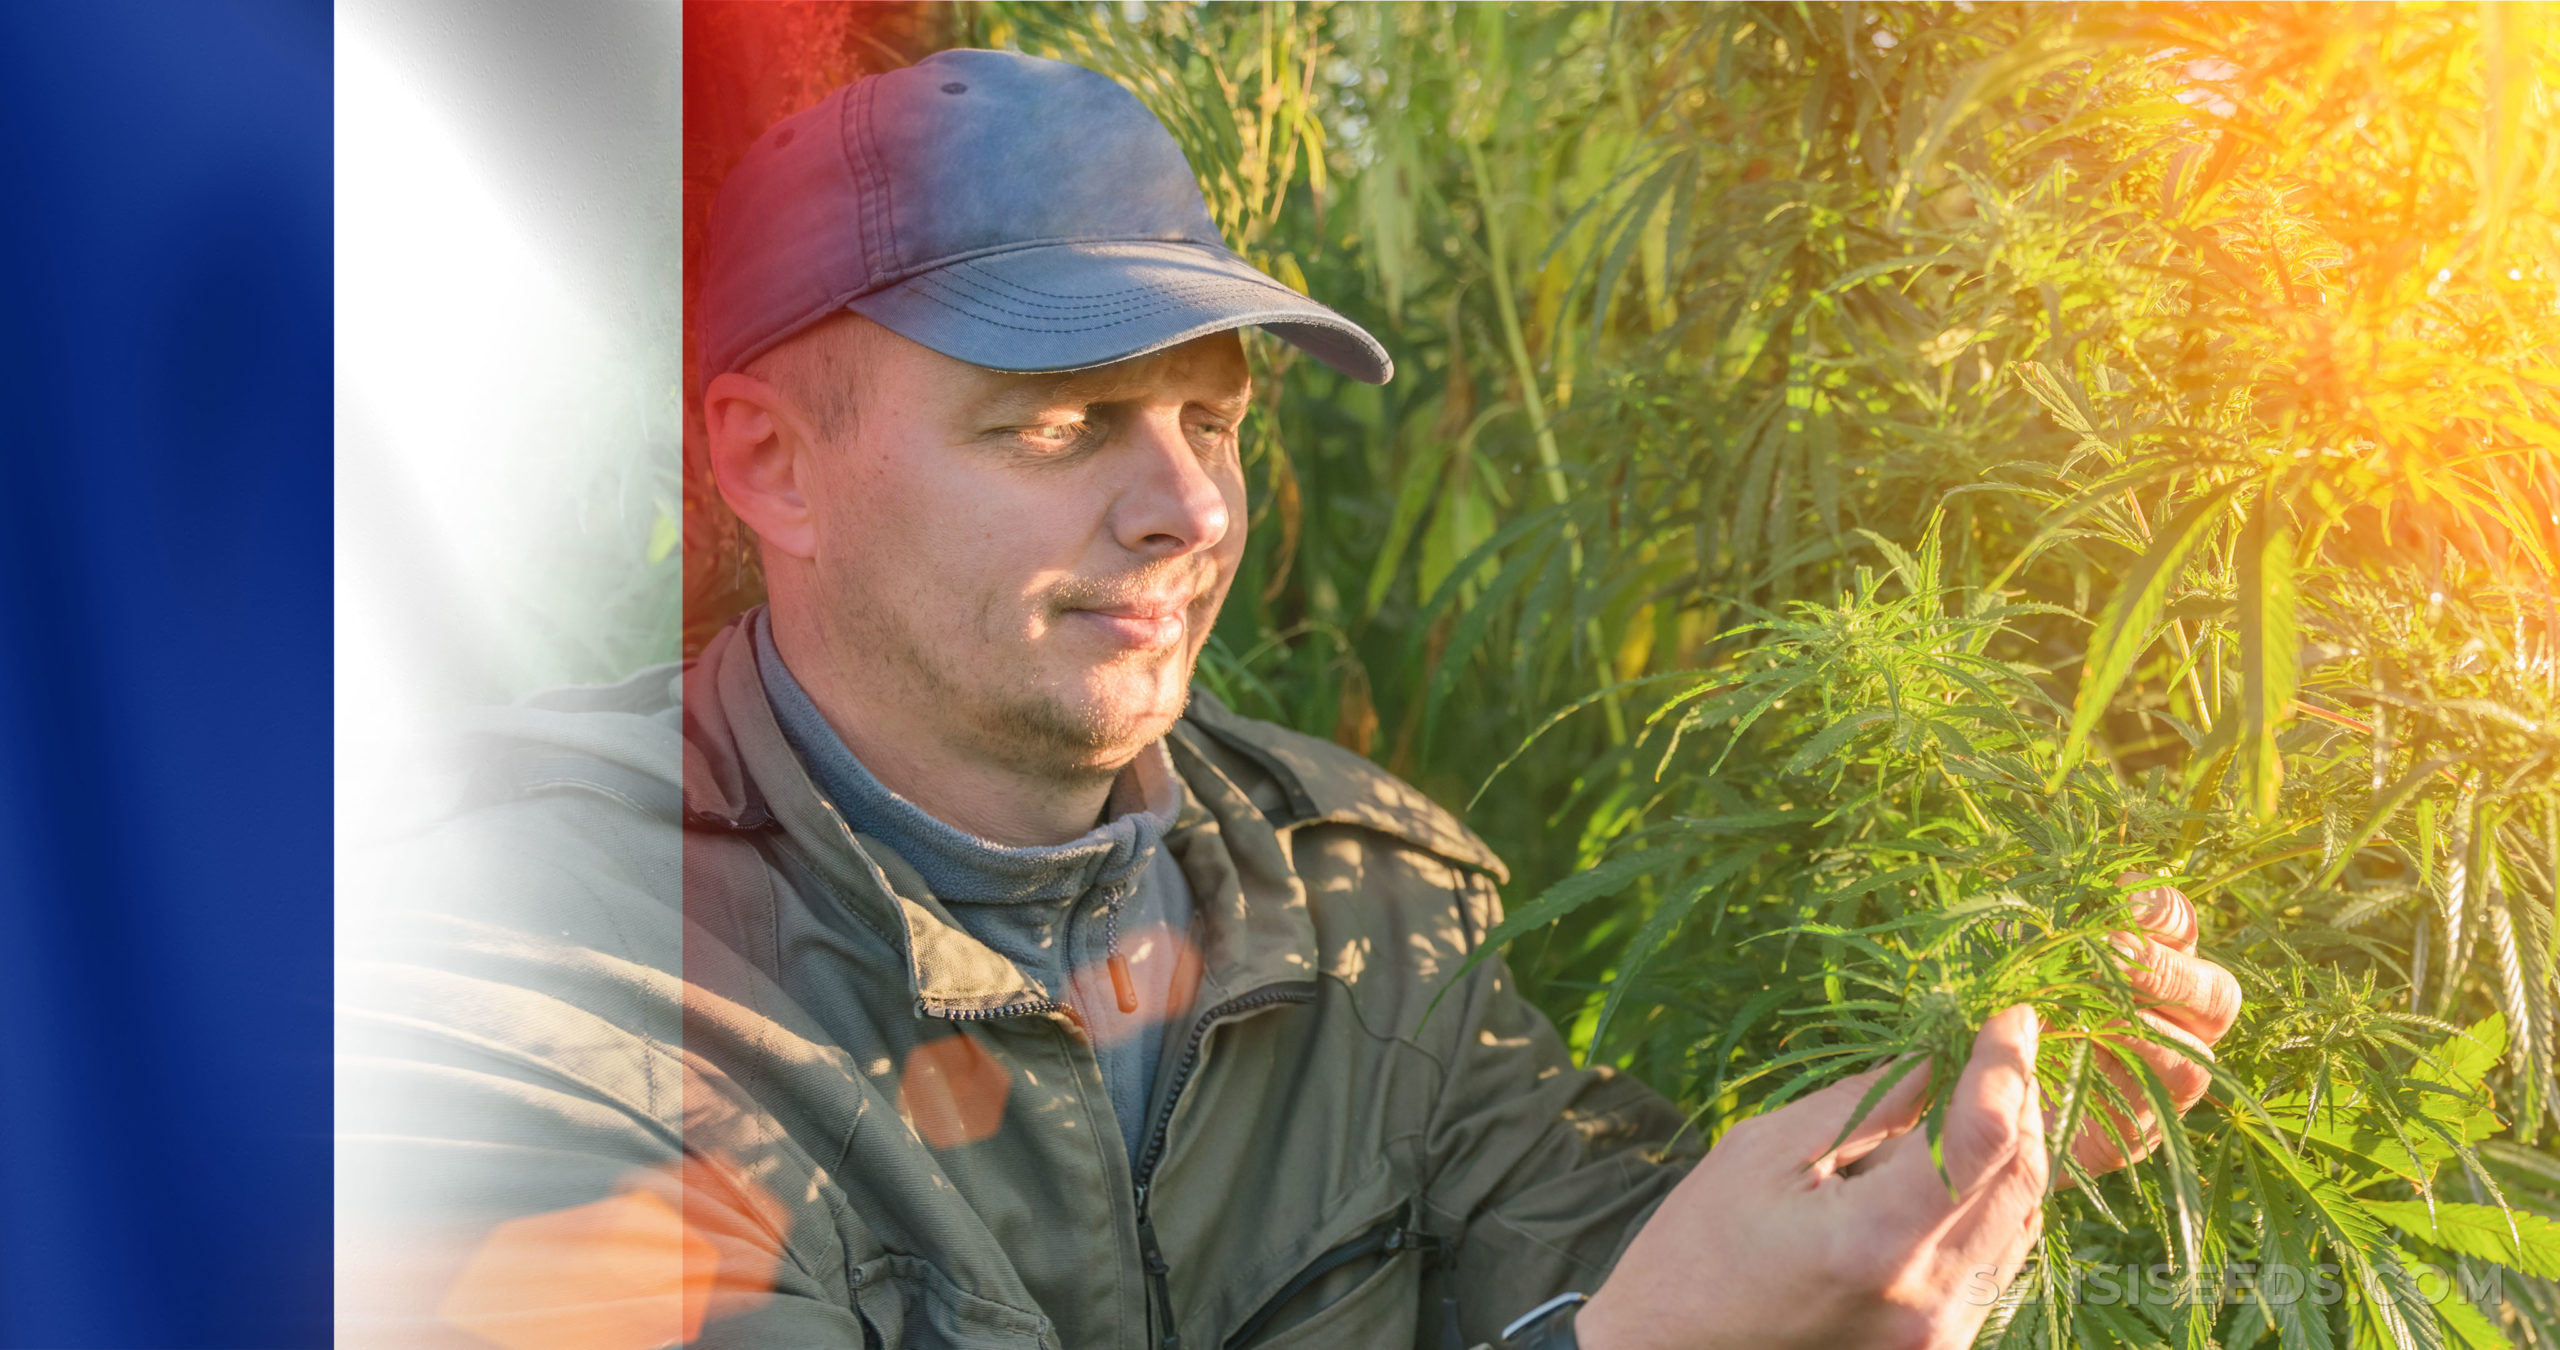 The French flag and a man in a cap inspecting a cannabis plant